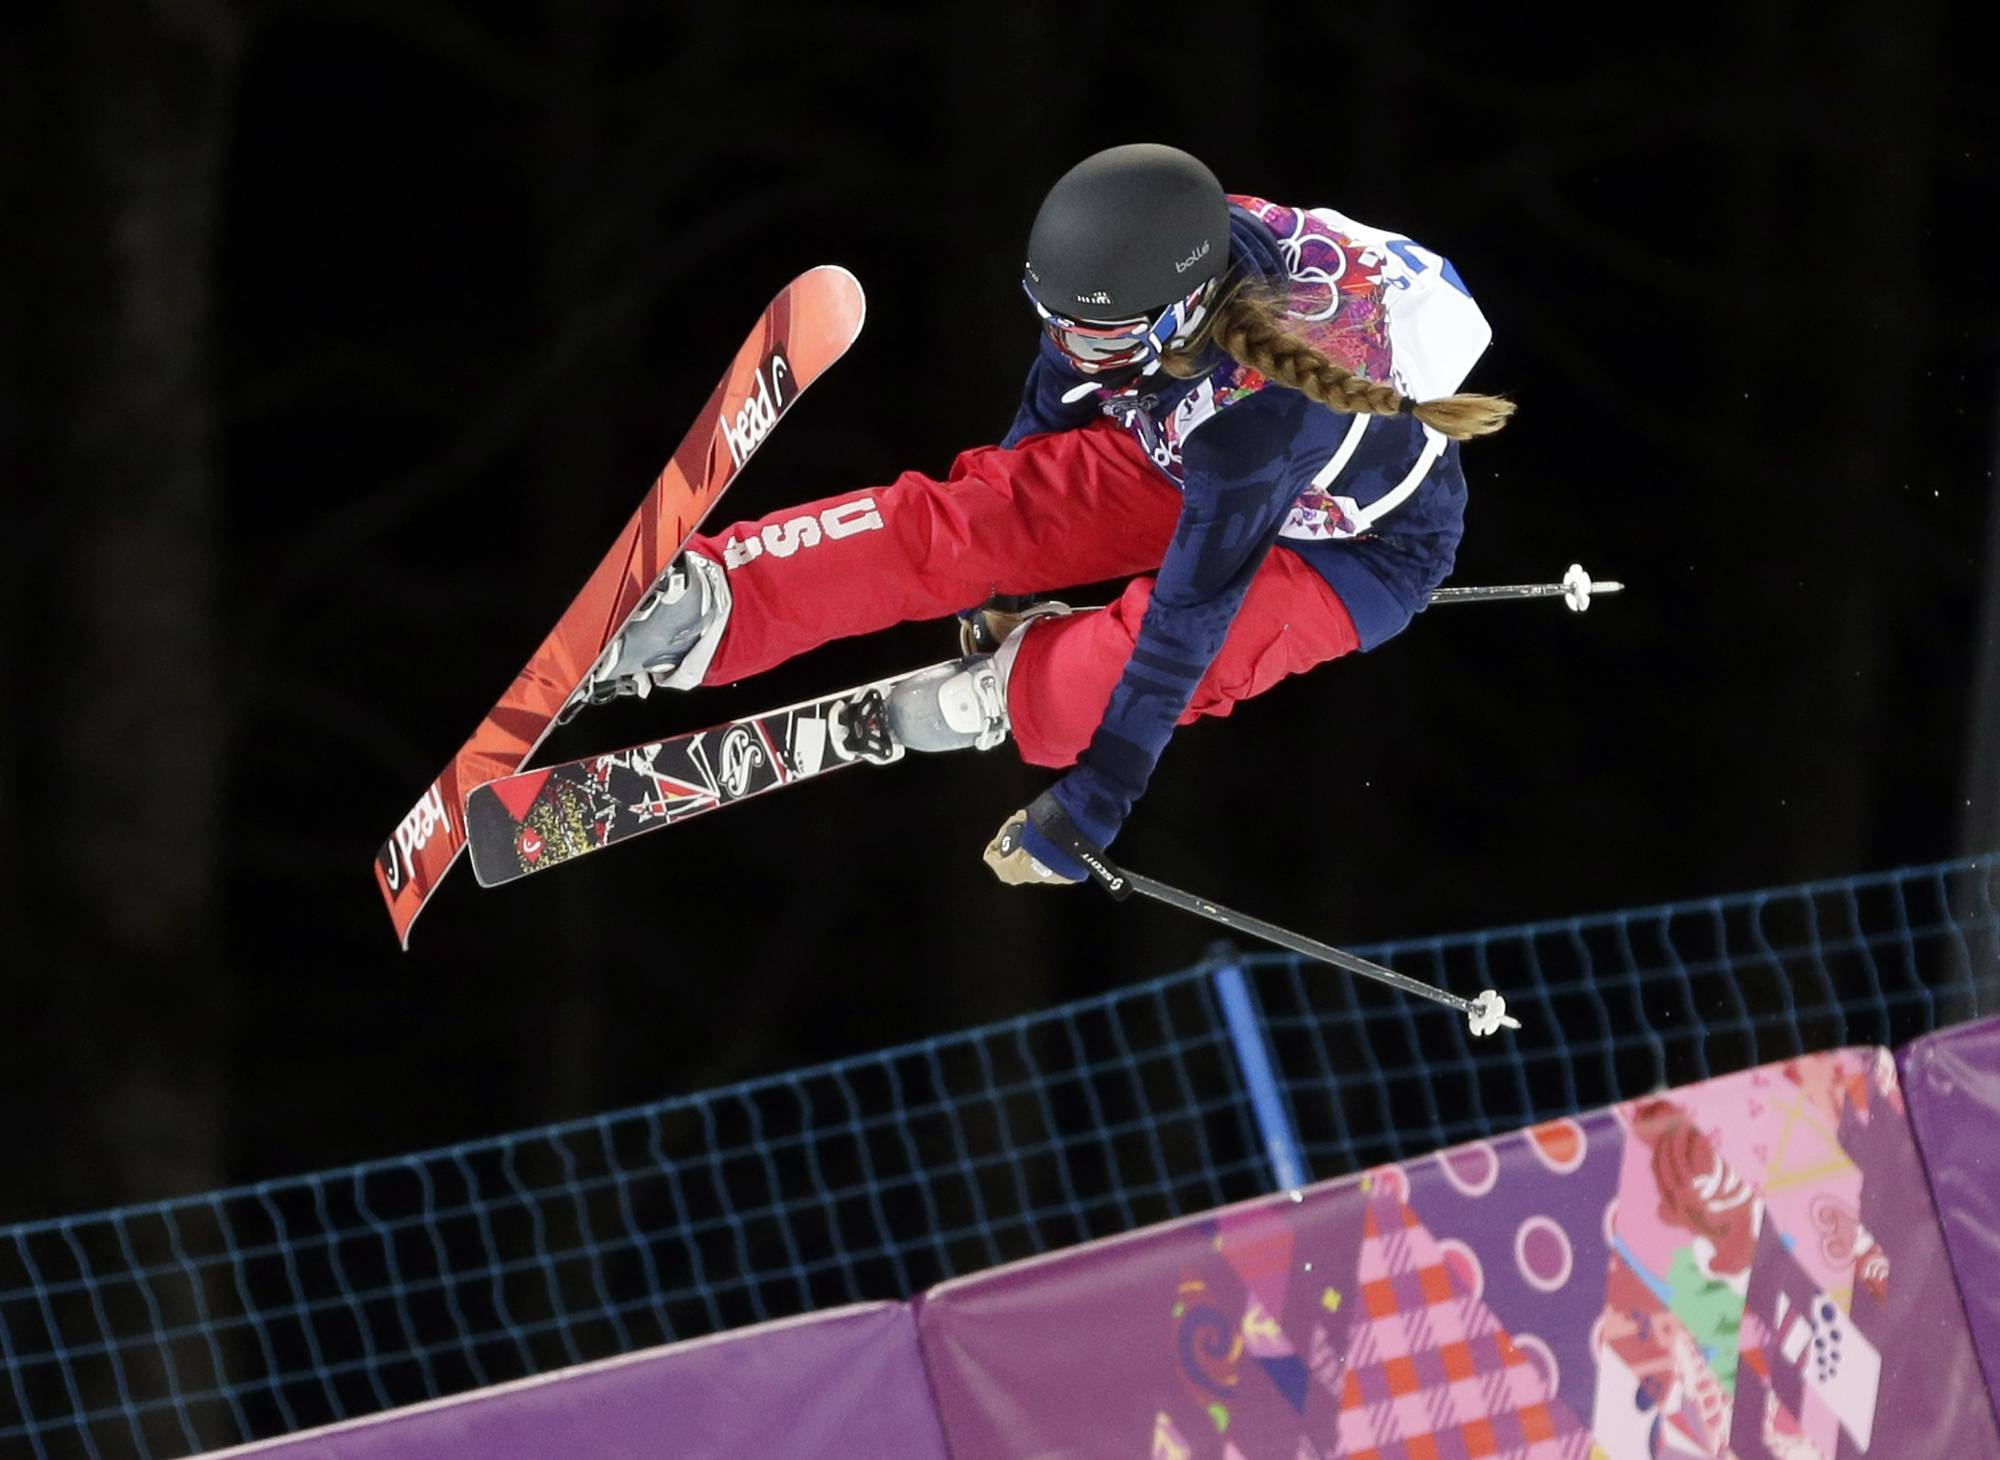 Maddie Bowman gets air Thursday during the women's halfpipe skiing qualifying at the Rosa Khutor Extreme Park during the 2014 Winter Olympics in Krasnaya Polyana, Russia.